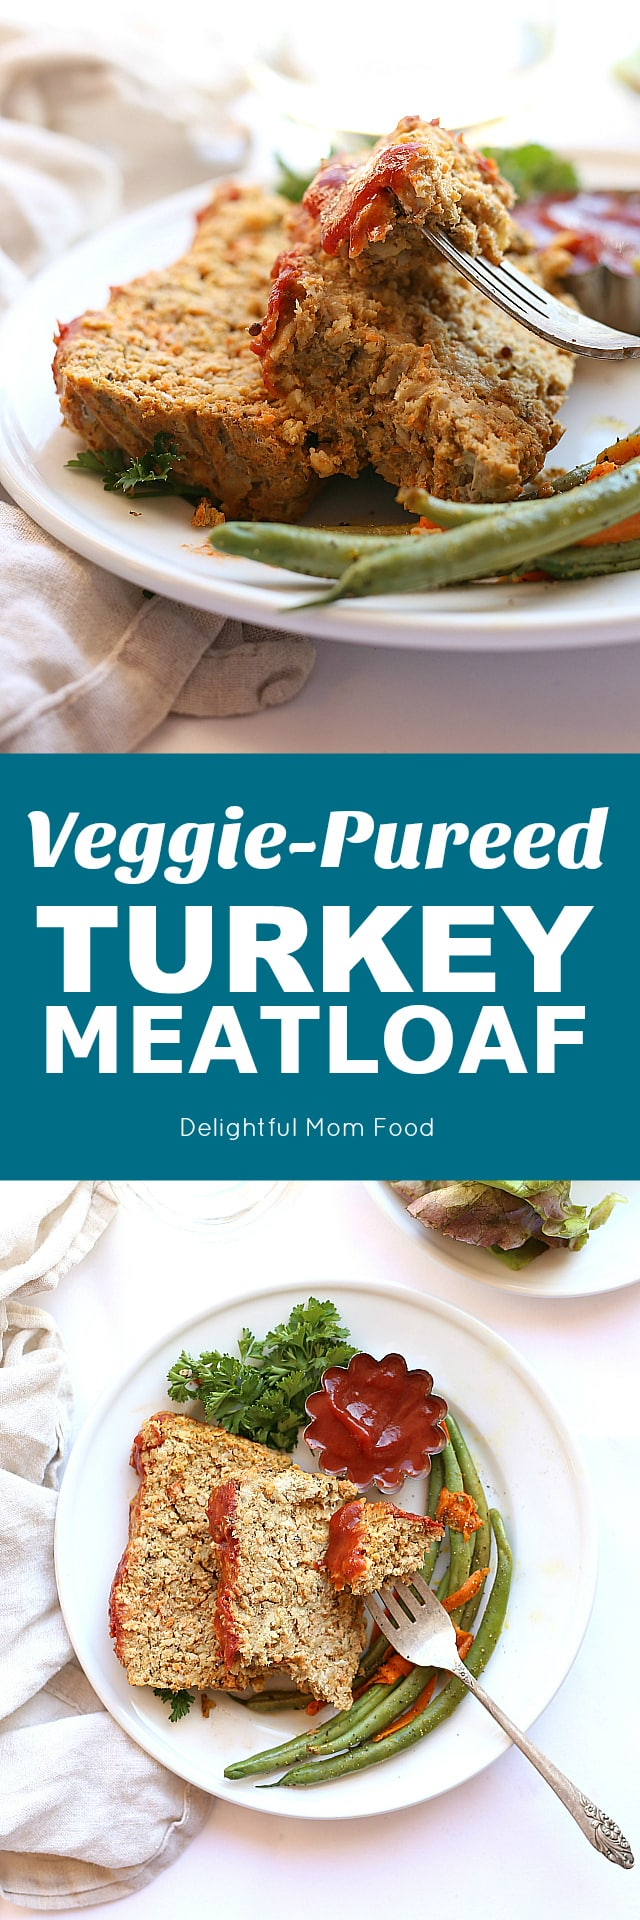 Turkey Meatball Recipe packed with Vegetables